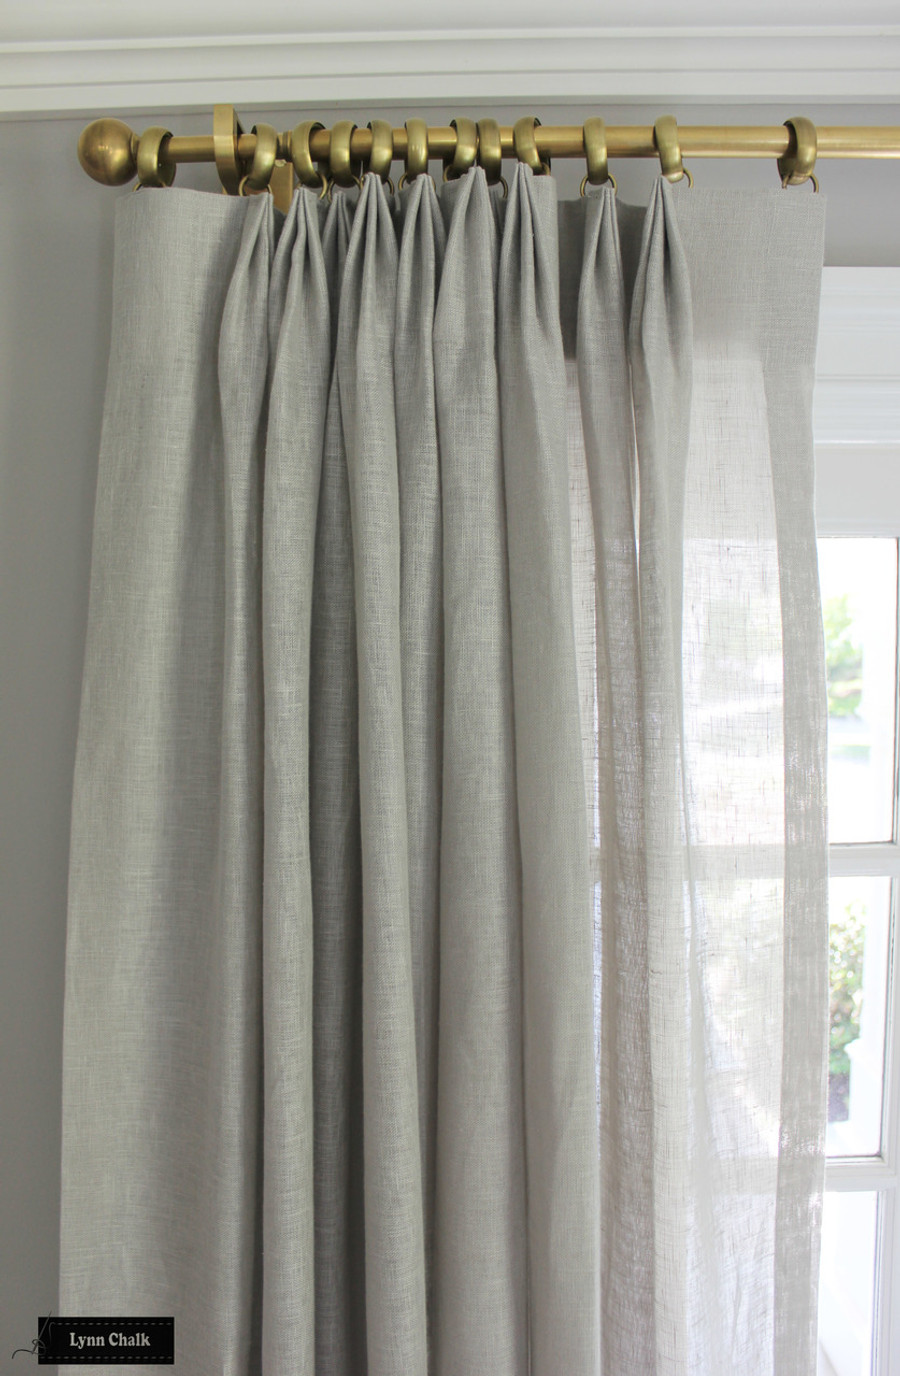 Living Room - Unlined Sheer Custom Drapes.  Drapery Hardware by Restoration Hardware.